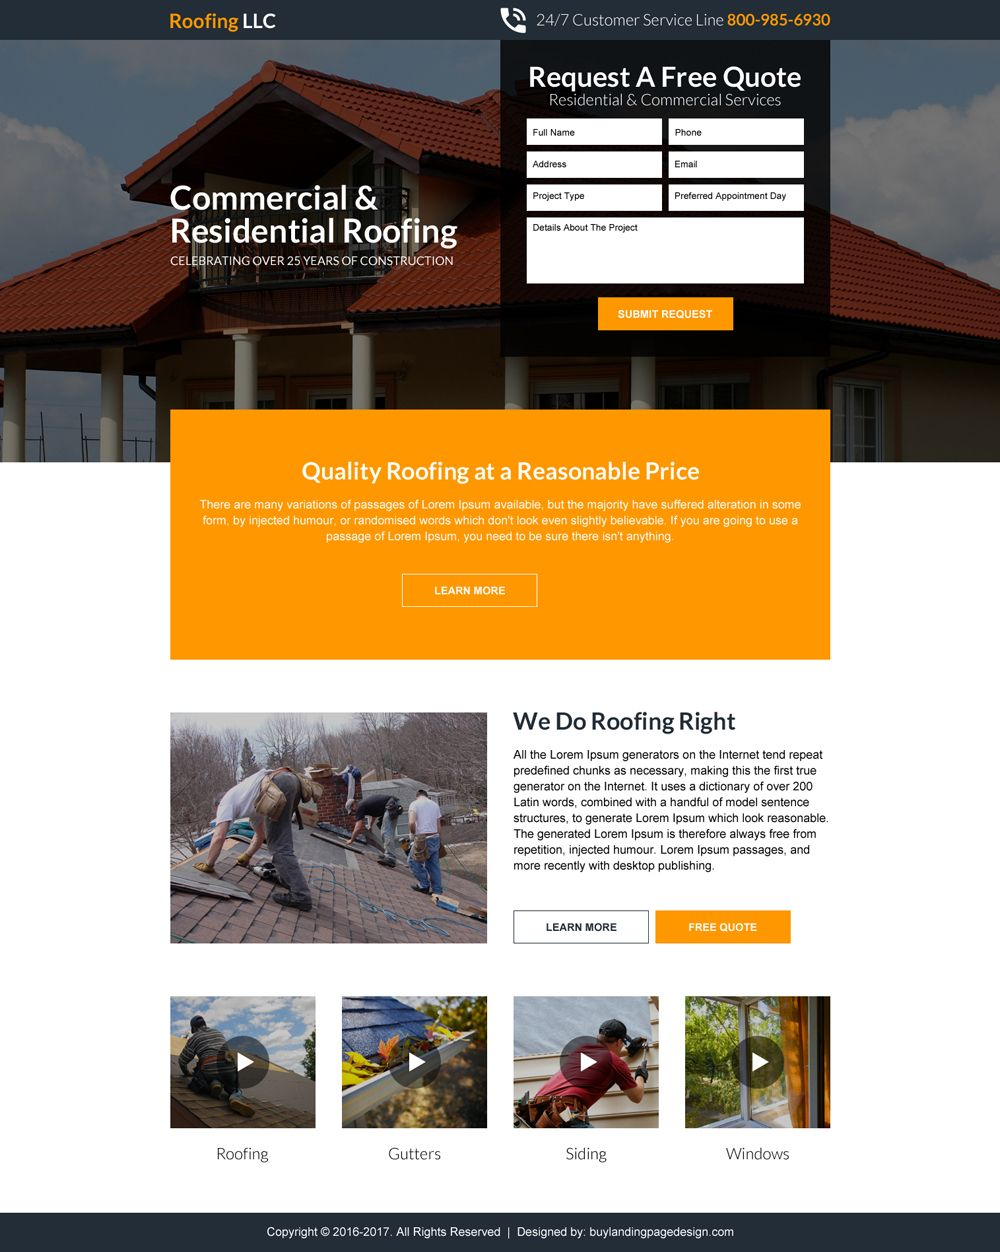 Quality Roofing Service Responsive Landing Page Roof Roofing Restoration Roofingservice Residentialroofing Commerci Roofing Services Roofing Landing Page